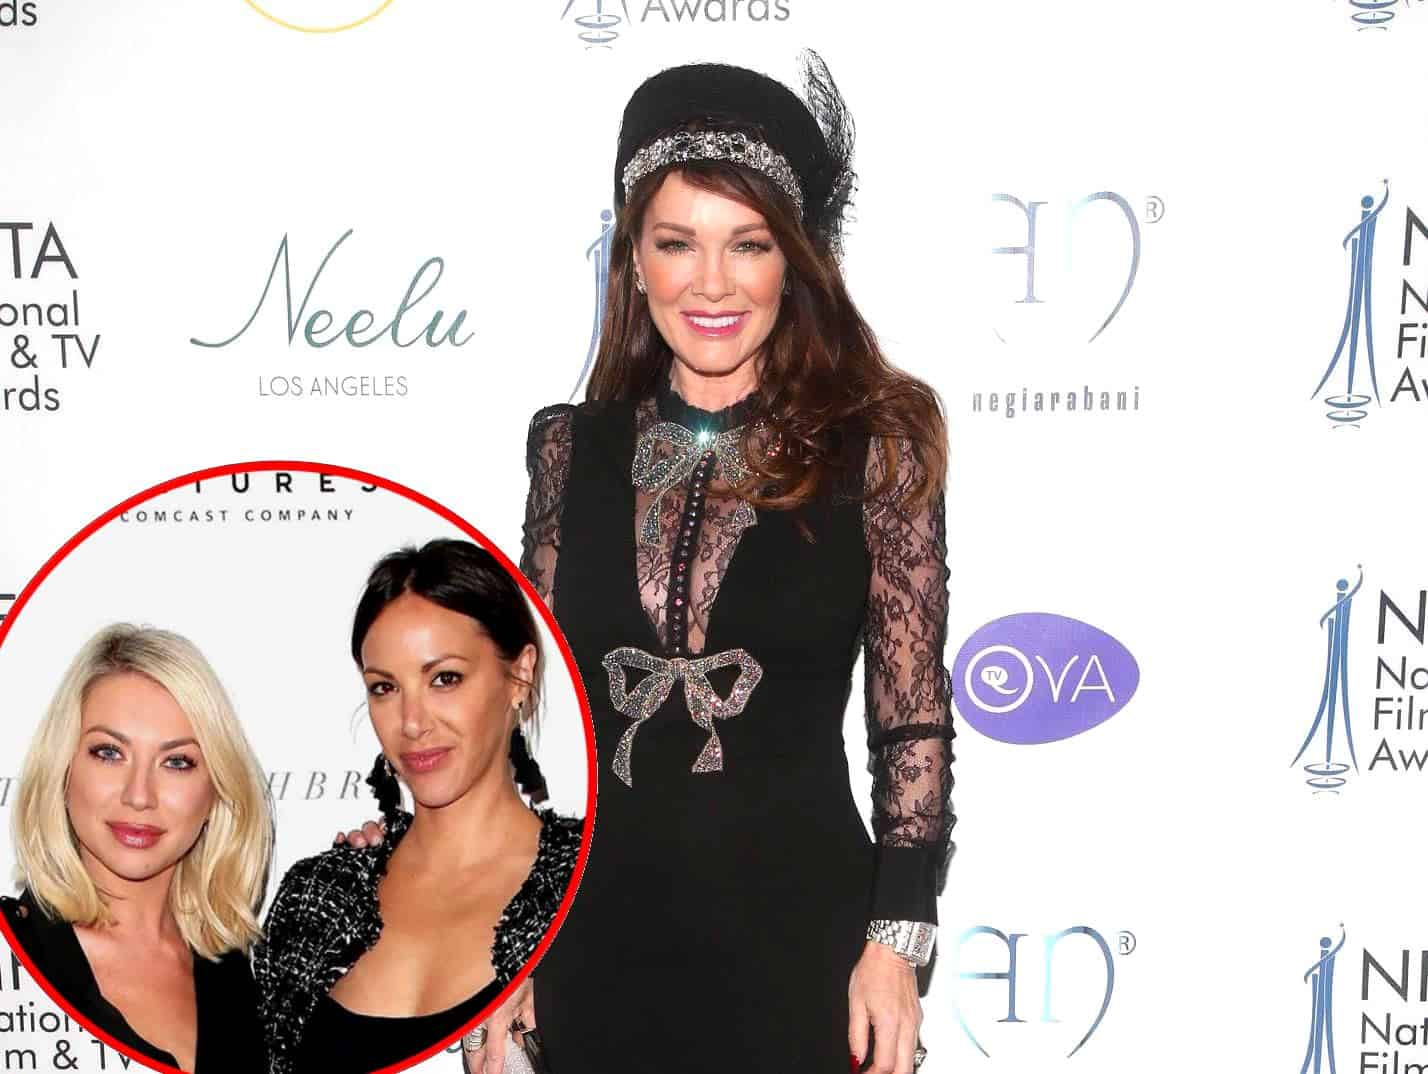 RHOBH's Lisa Vanderpump Weighs in on Stassi's Feud With Kristen and Reacts to Jax Unfollowing the Vanderpump Rules Cast, Plus a Ferrari Crashes Into Pump Restaurant